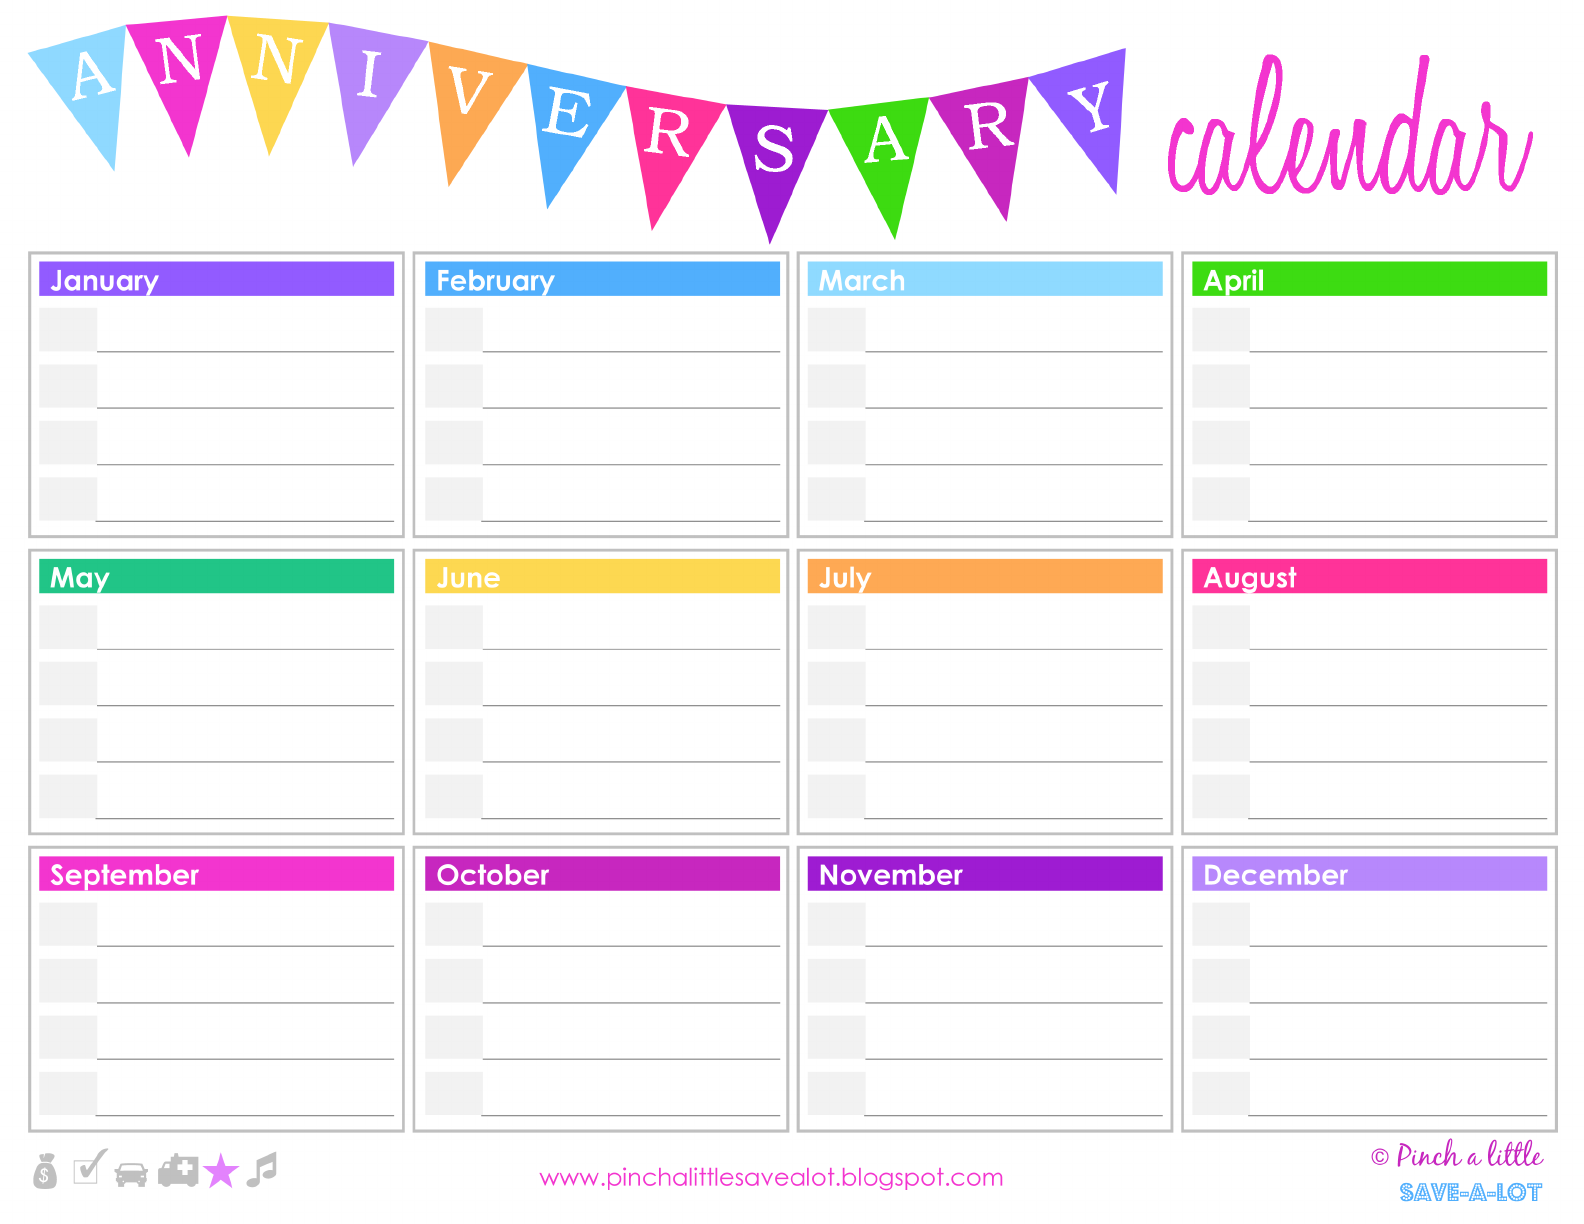 Free Birthday Calendar Template Download